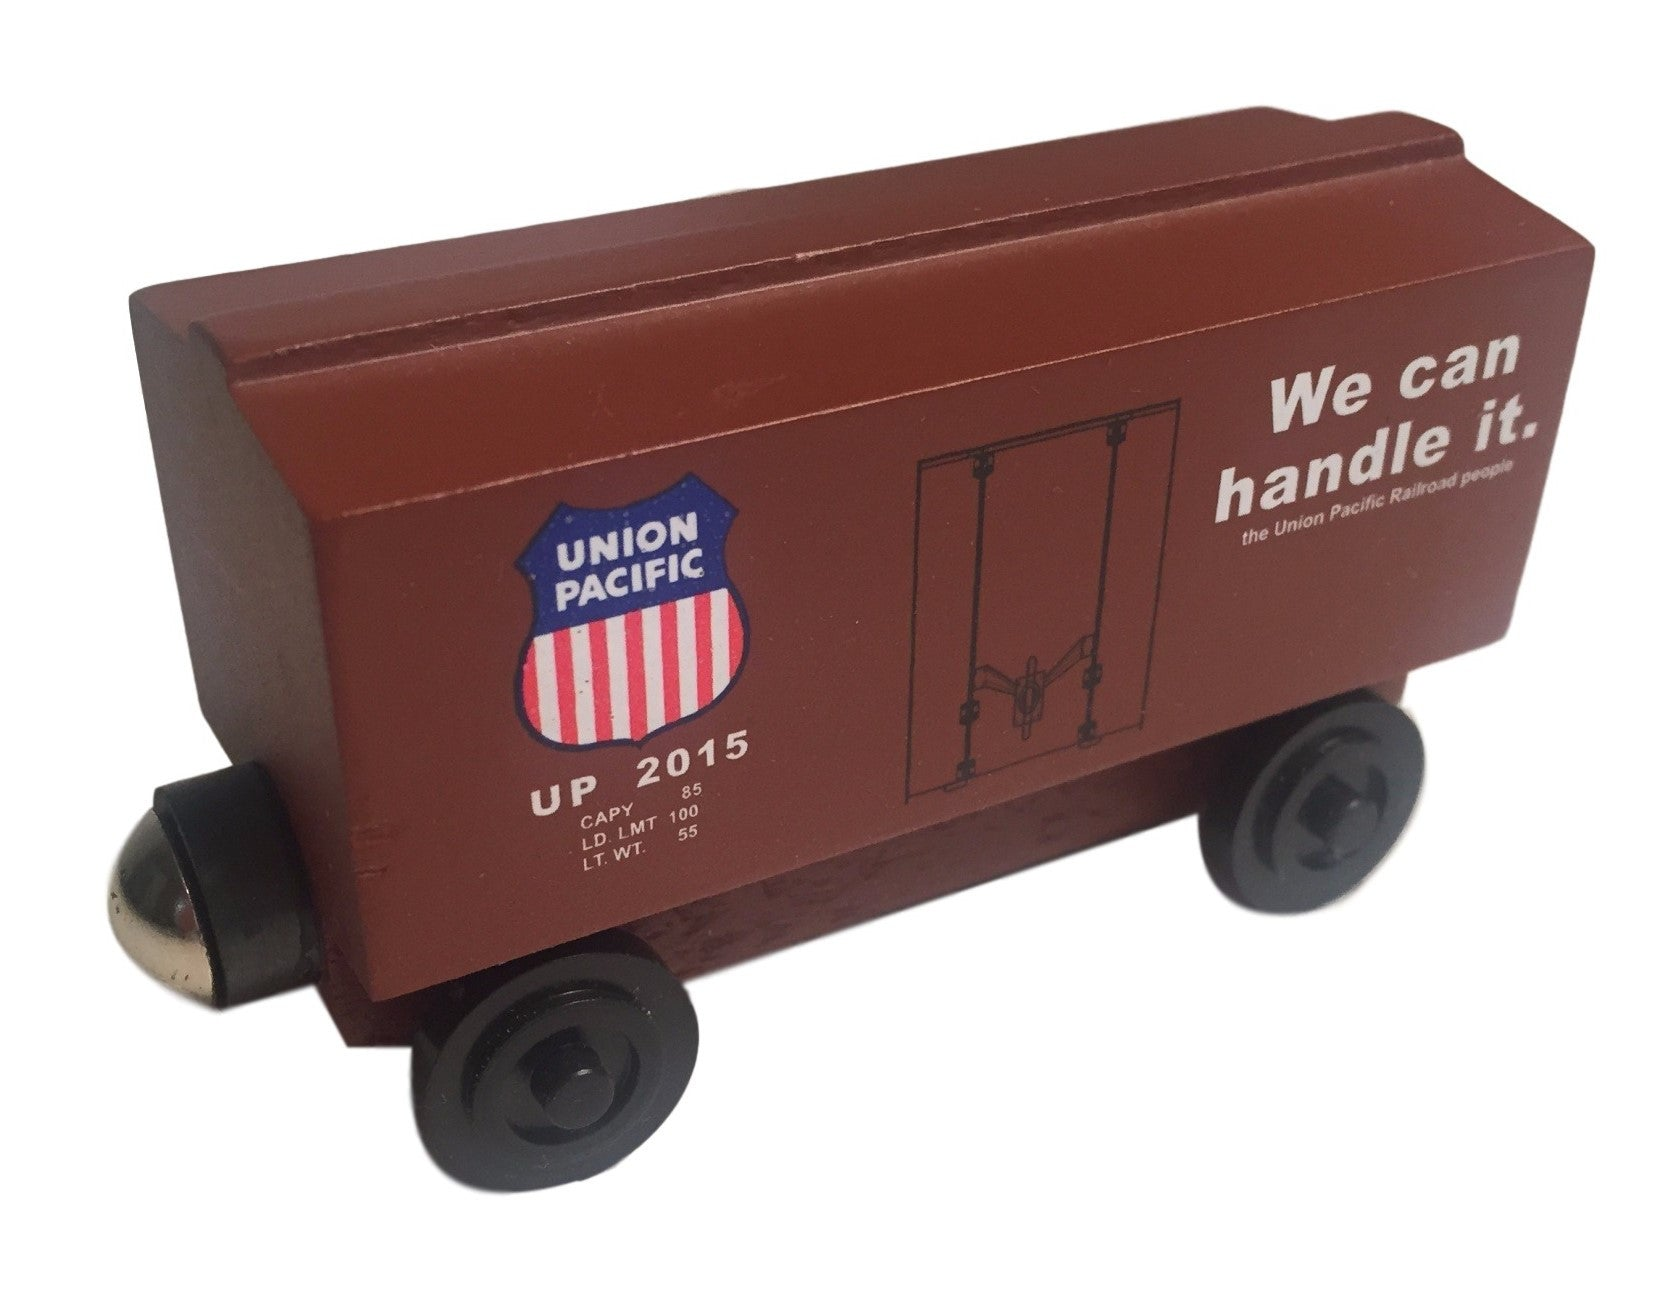 Whittle Shortline Railroad Union Pacific Boxcar Wooden Toy Train